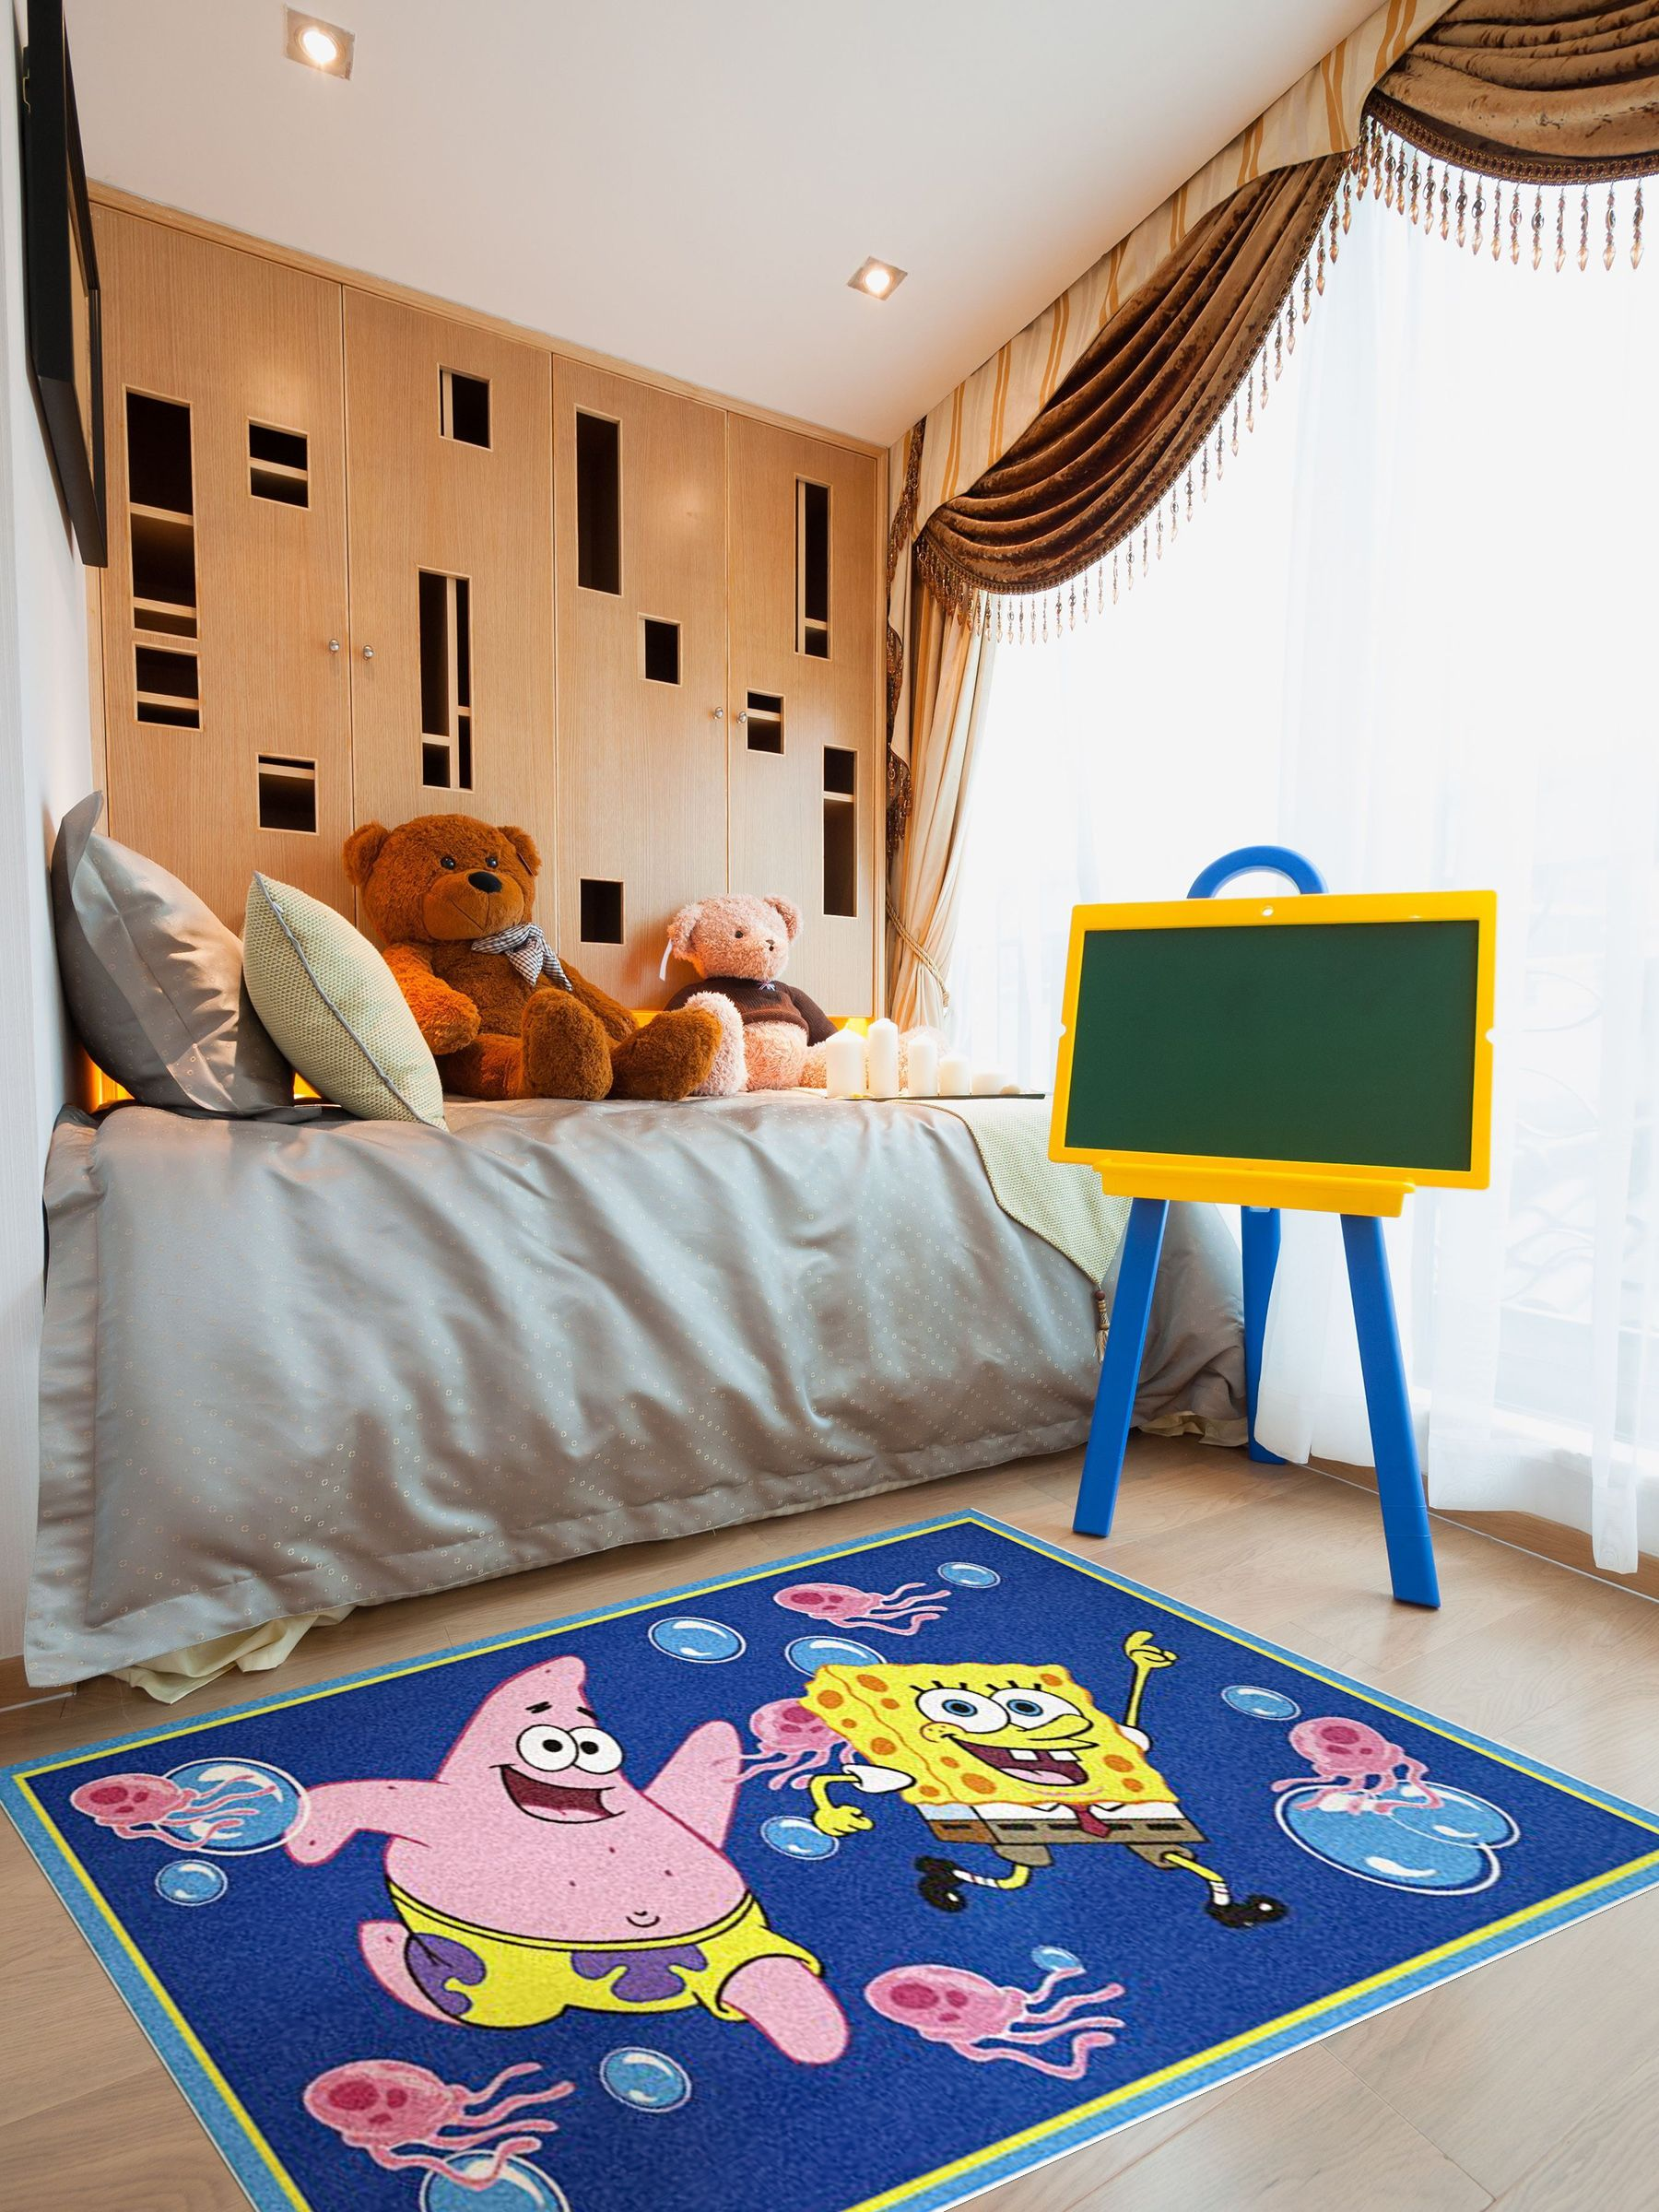 Spongebob Rug In A Child S Bedroom